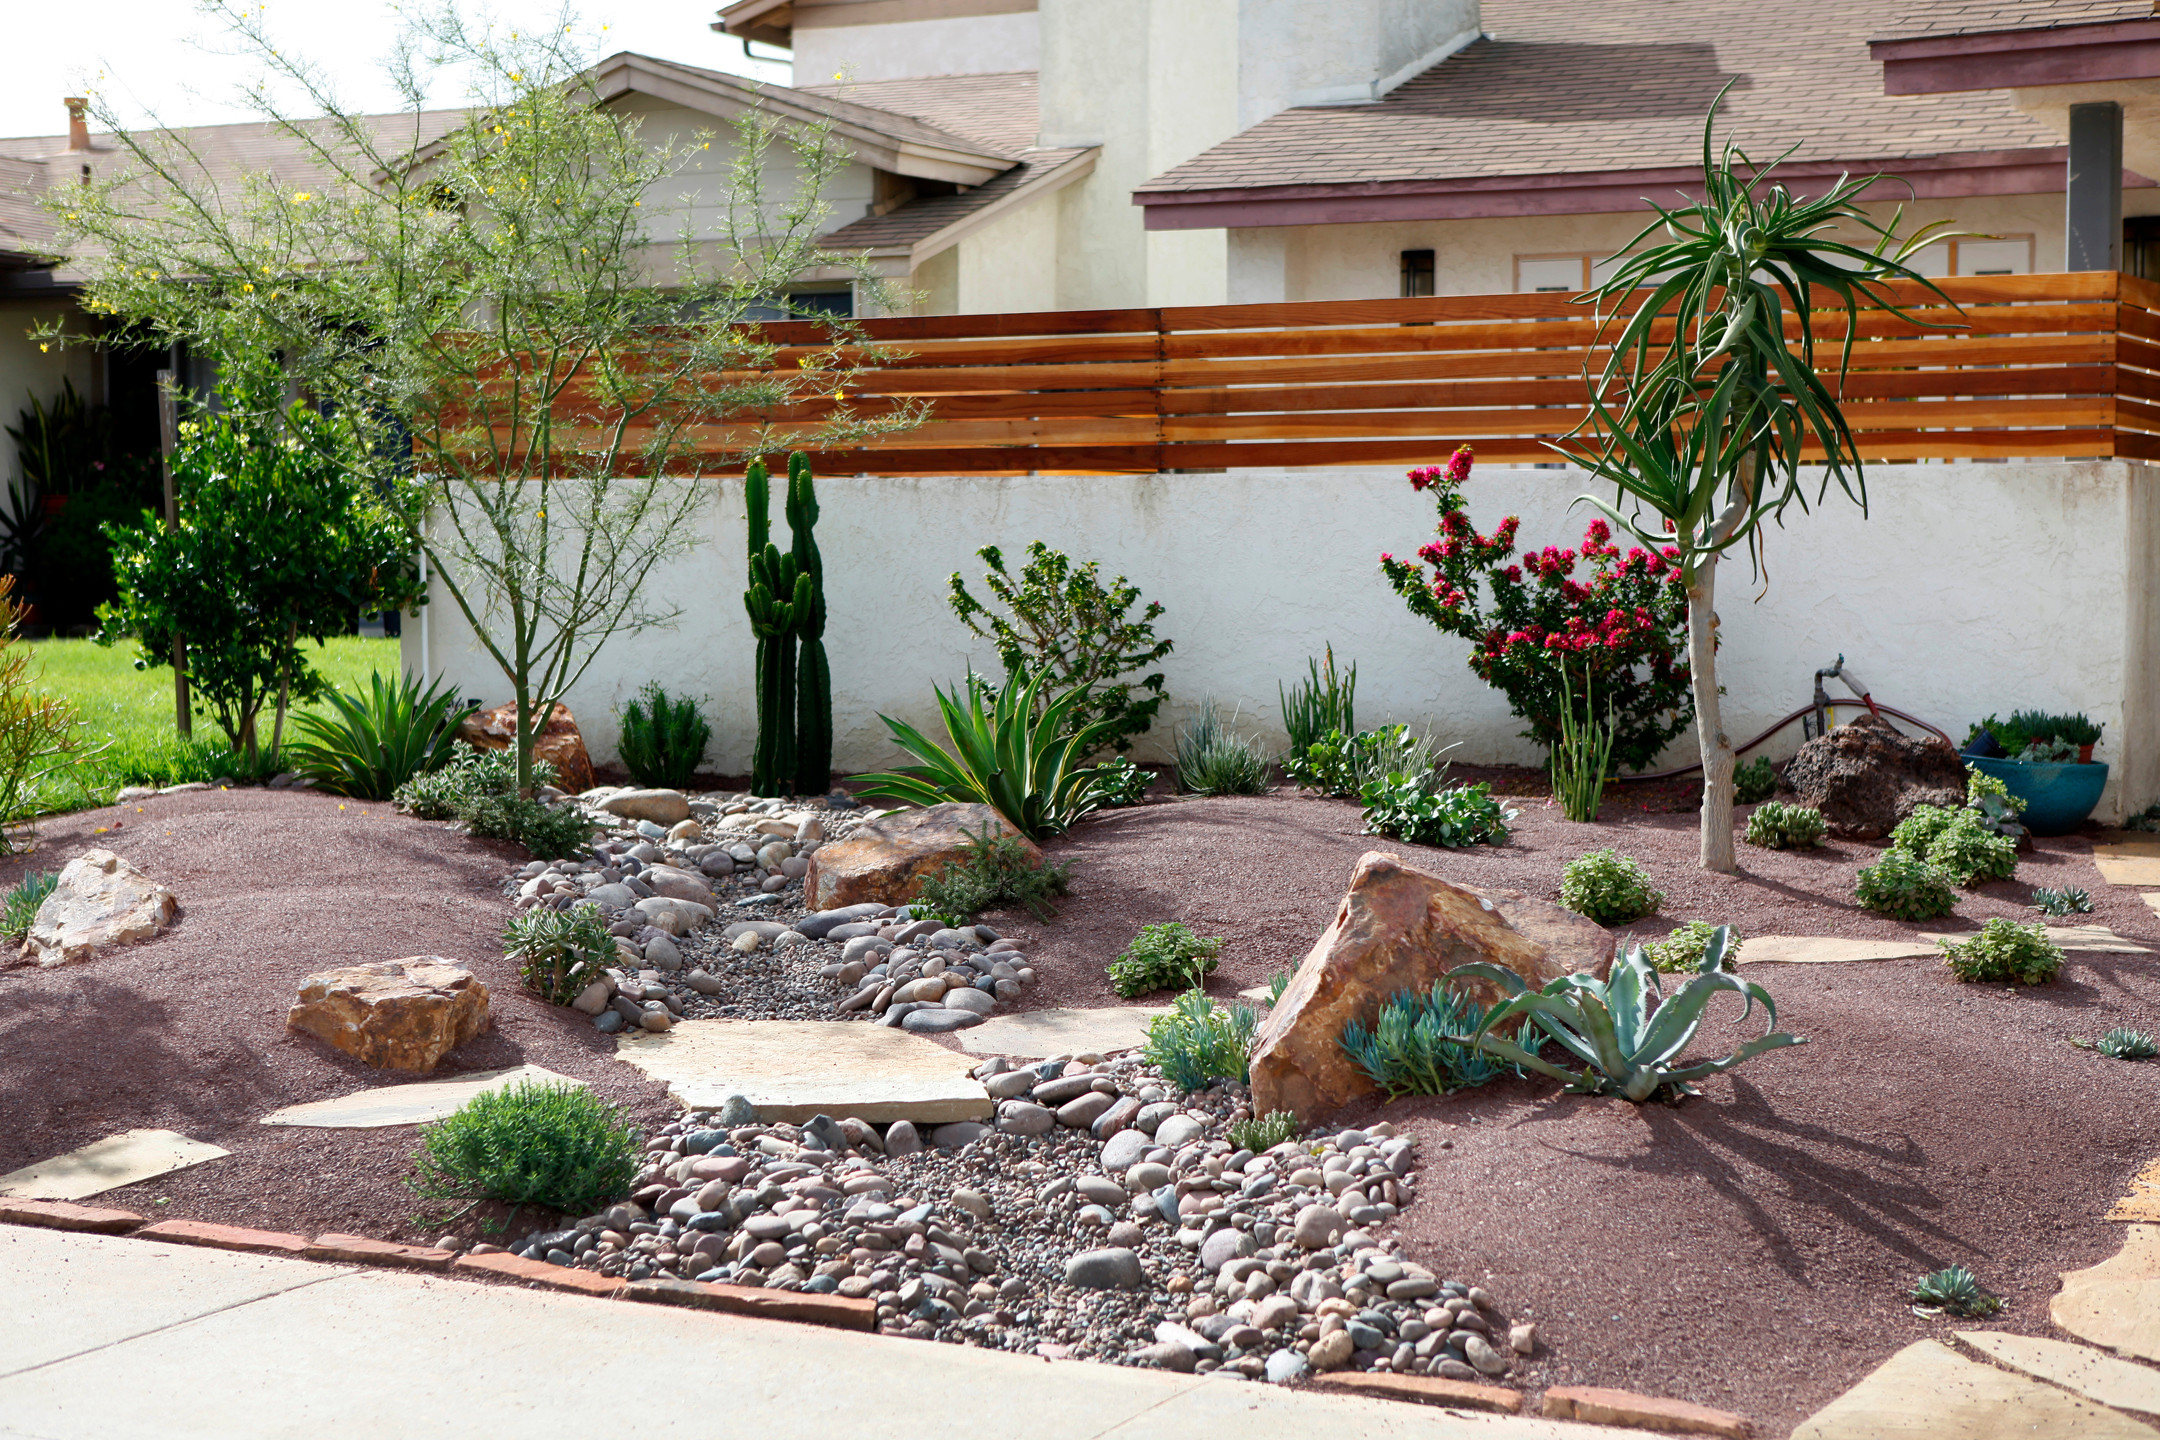 75 Desert Front Yard Landscaping Design Ideas You Can Actually Use 2021 Houzz